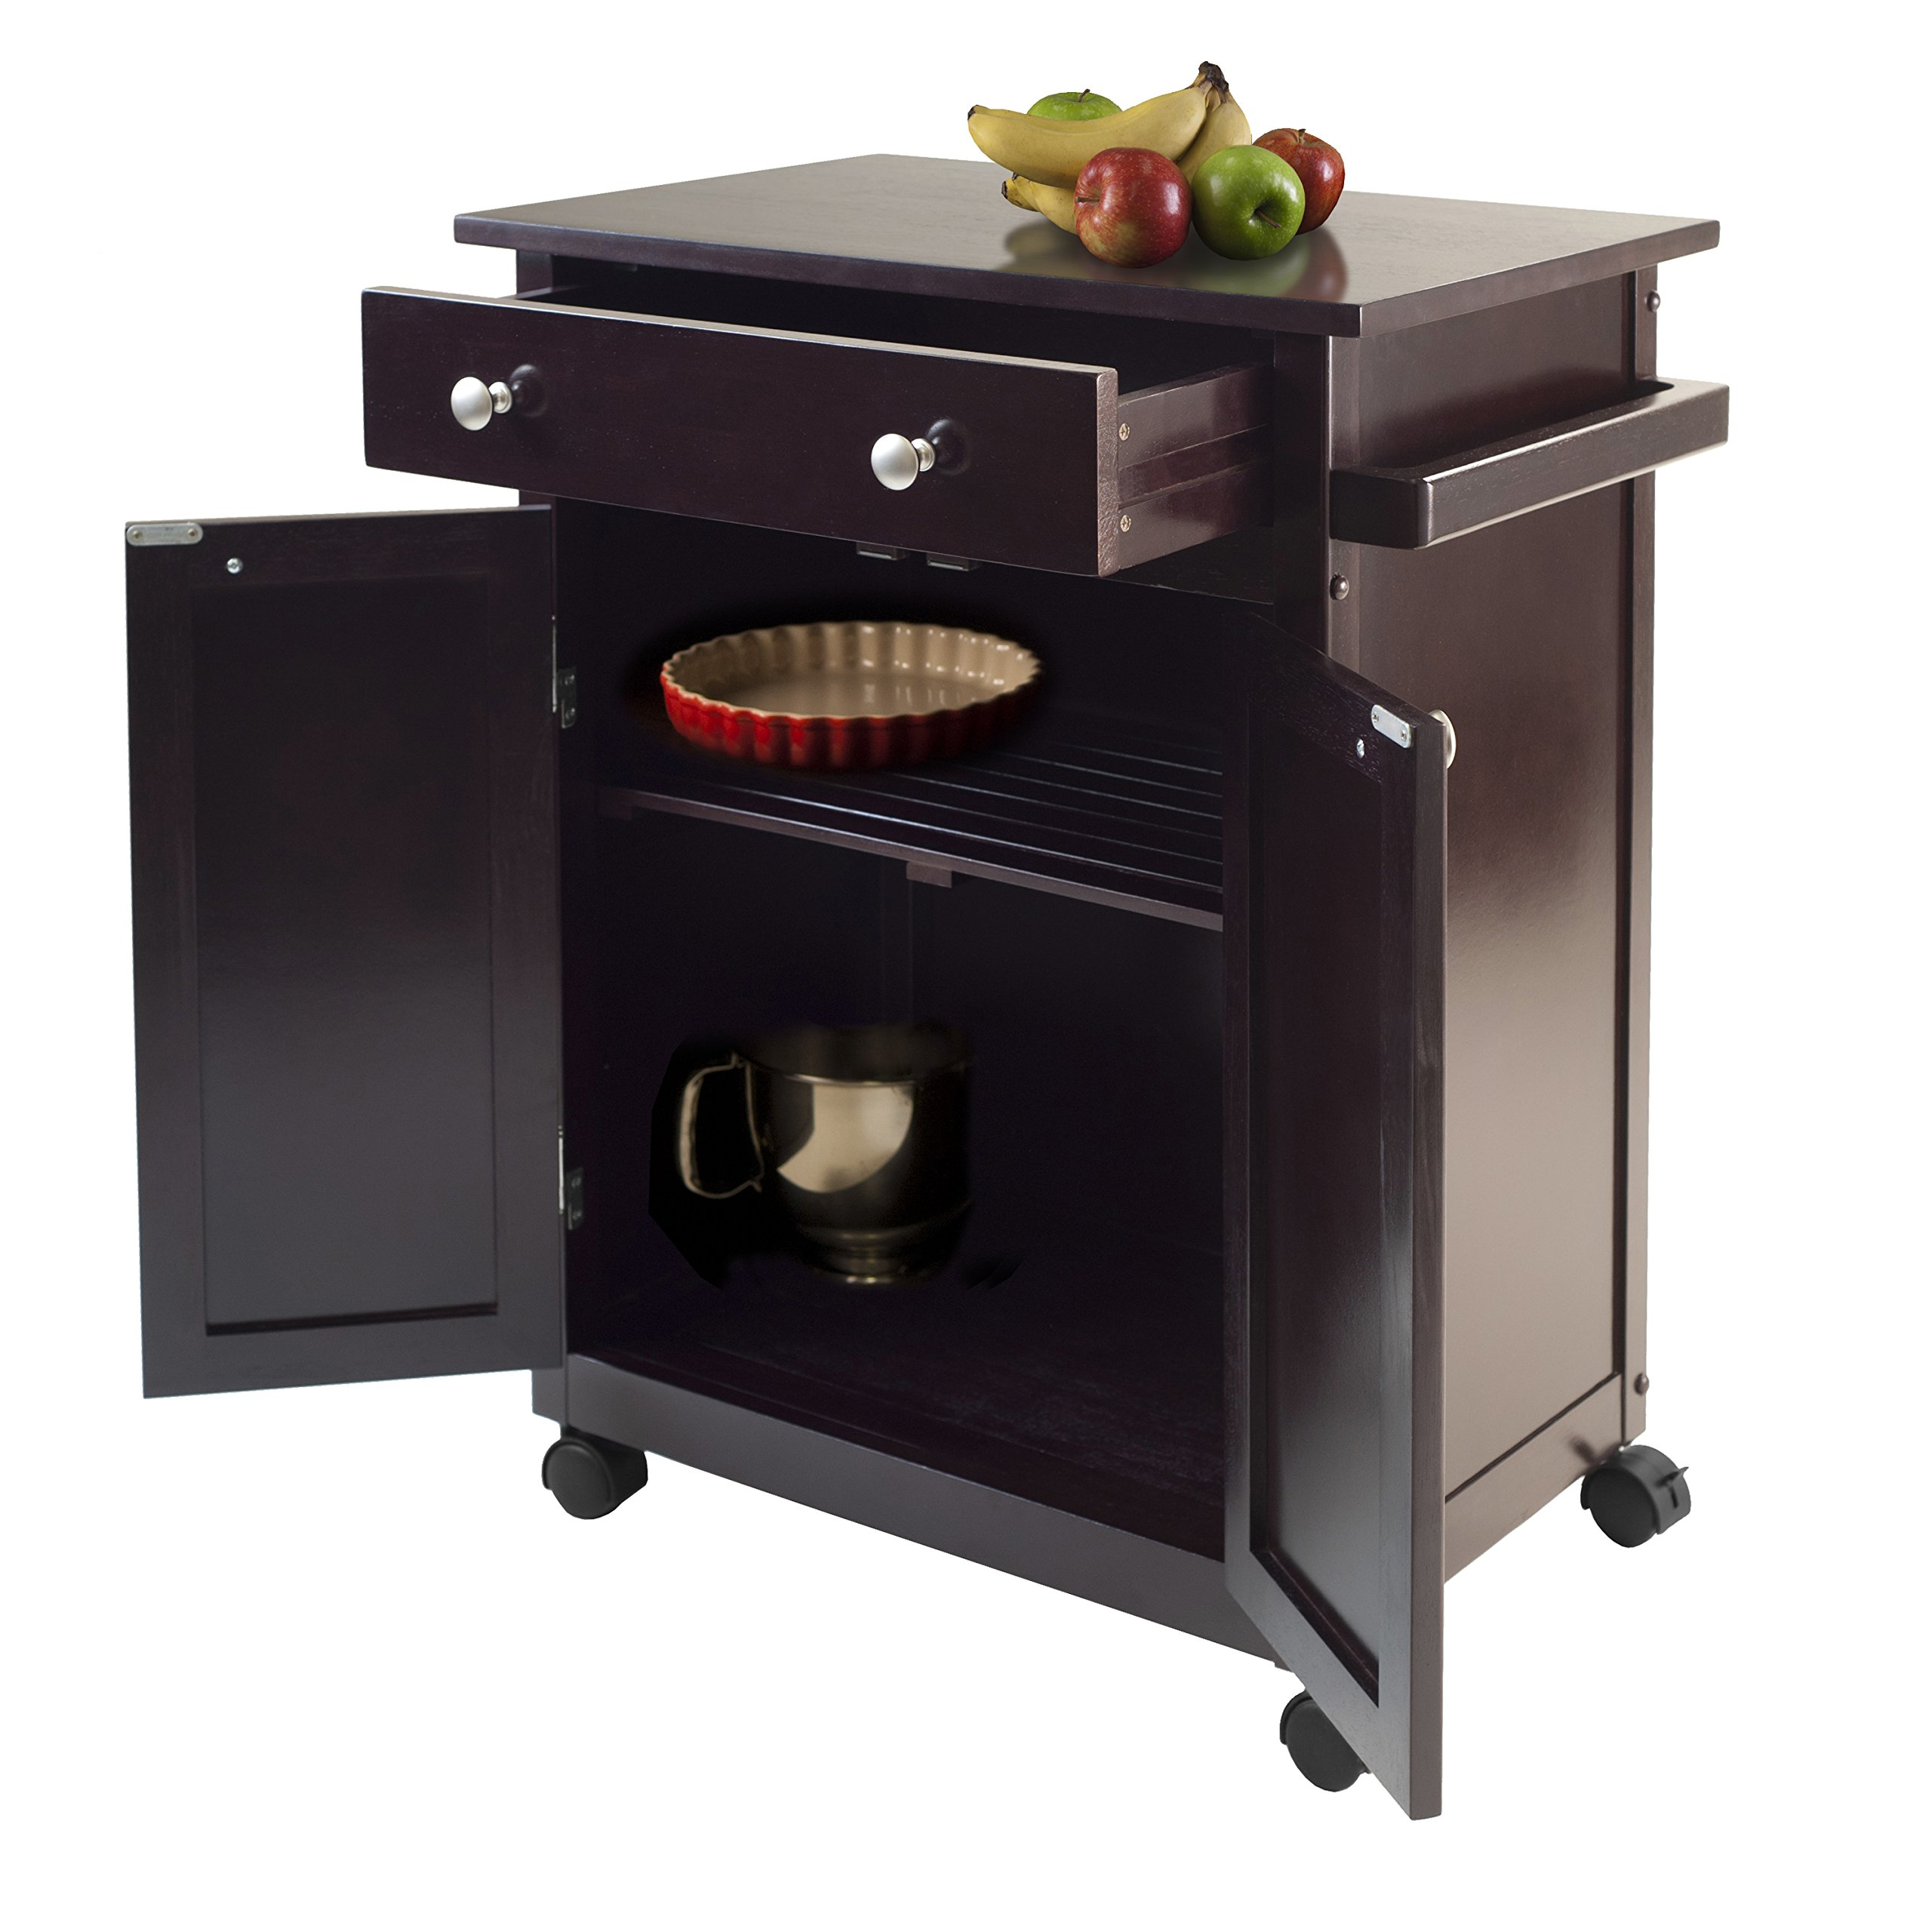 Winsome 92626 Savannah Kitchen, Espresso by Winsome (Image #3)